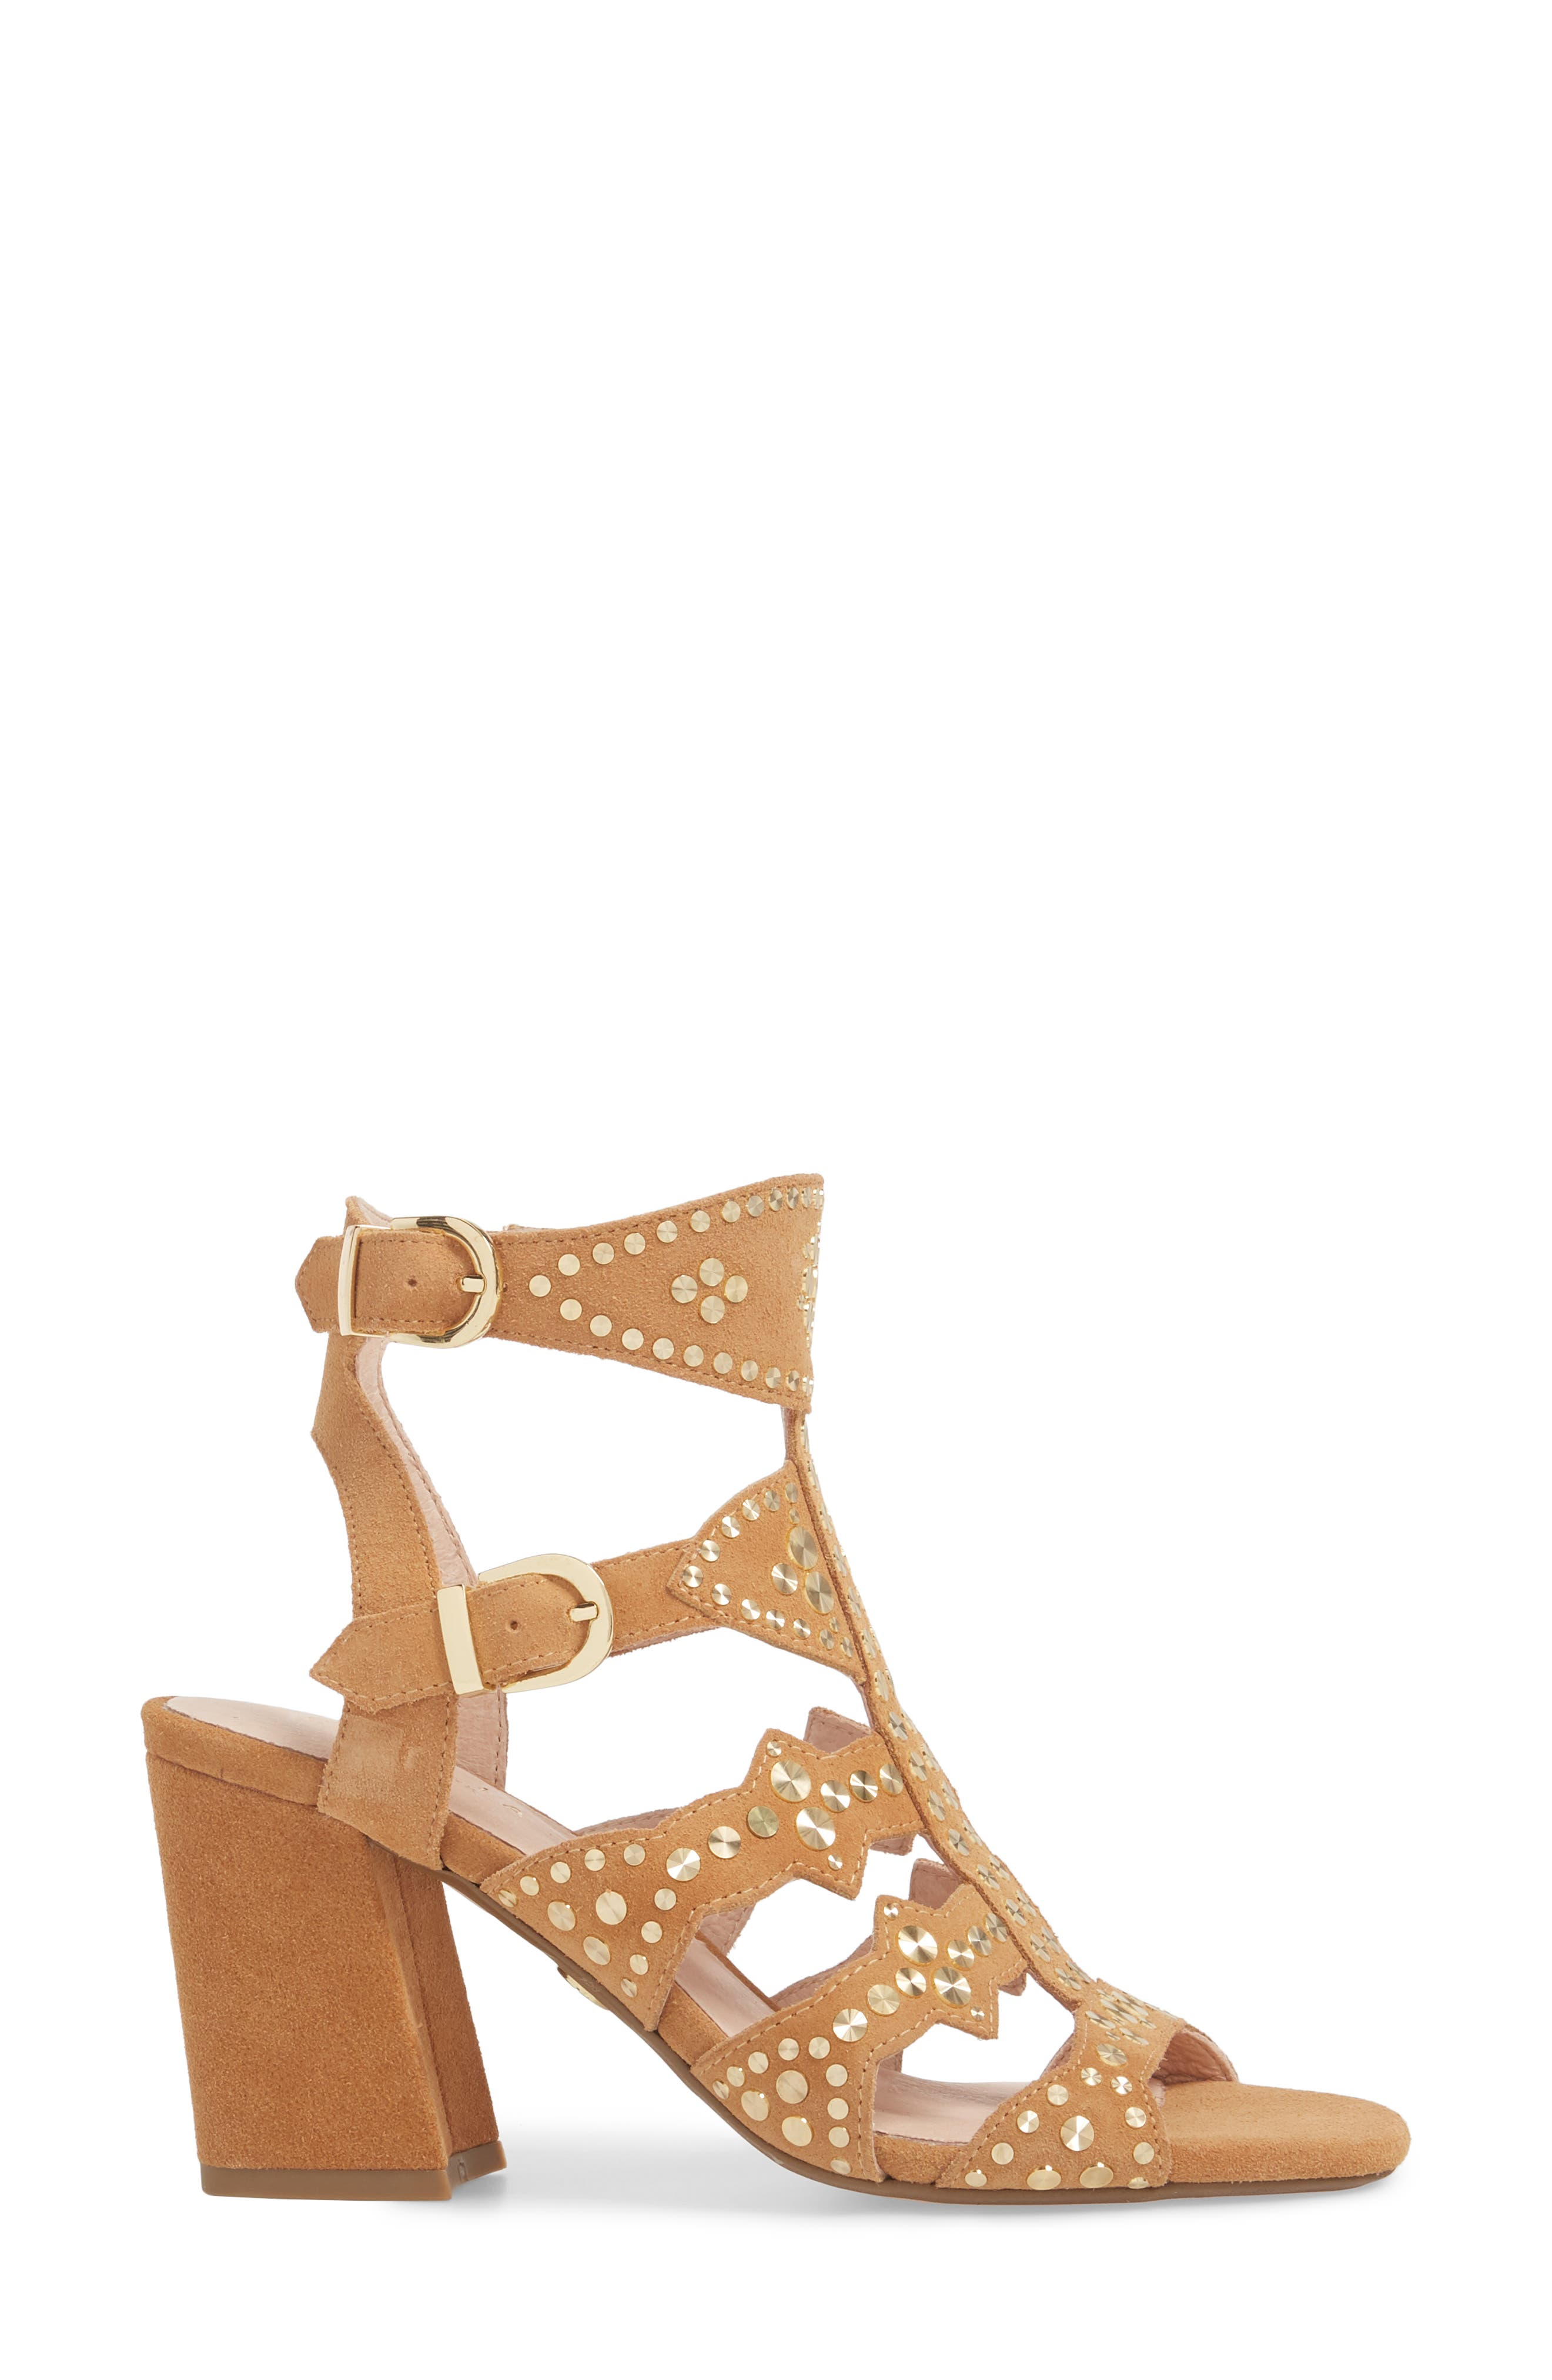 Cosmo Studded Sandal,                             Alternate thumbnail 3, color,                             Sand Suede